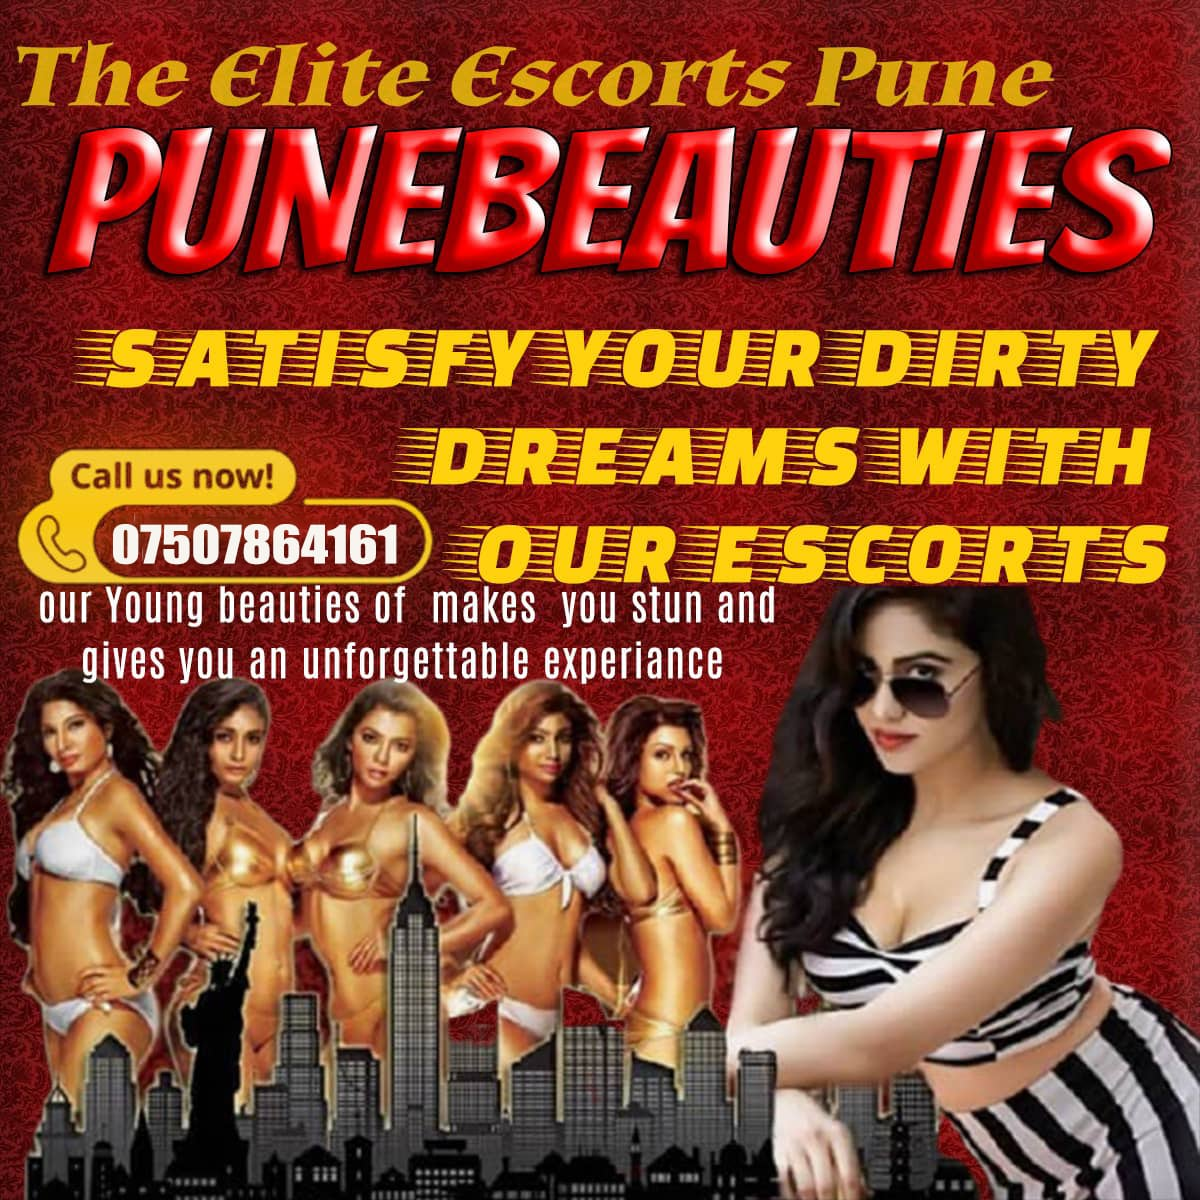 Escort in Pune